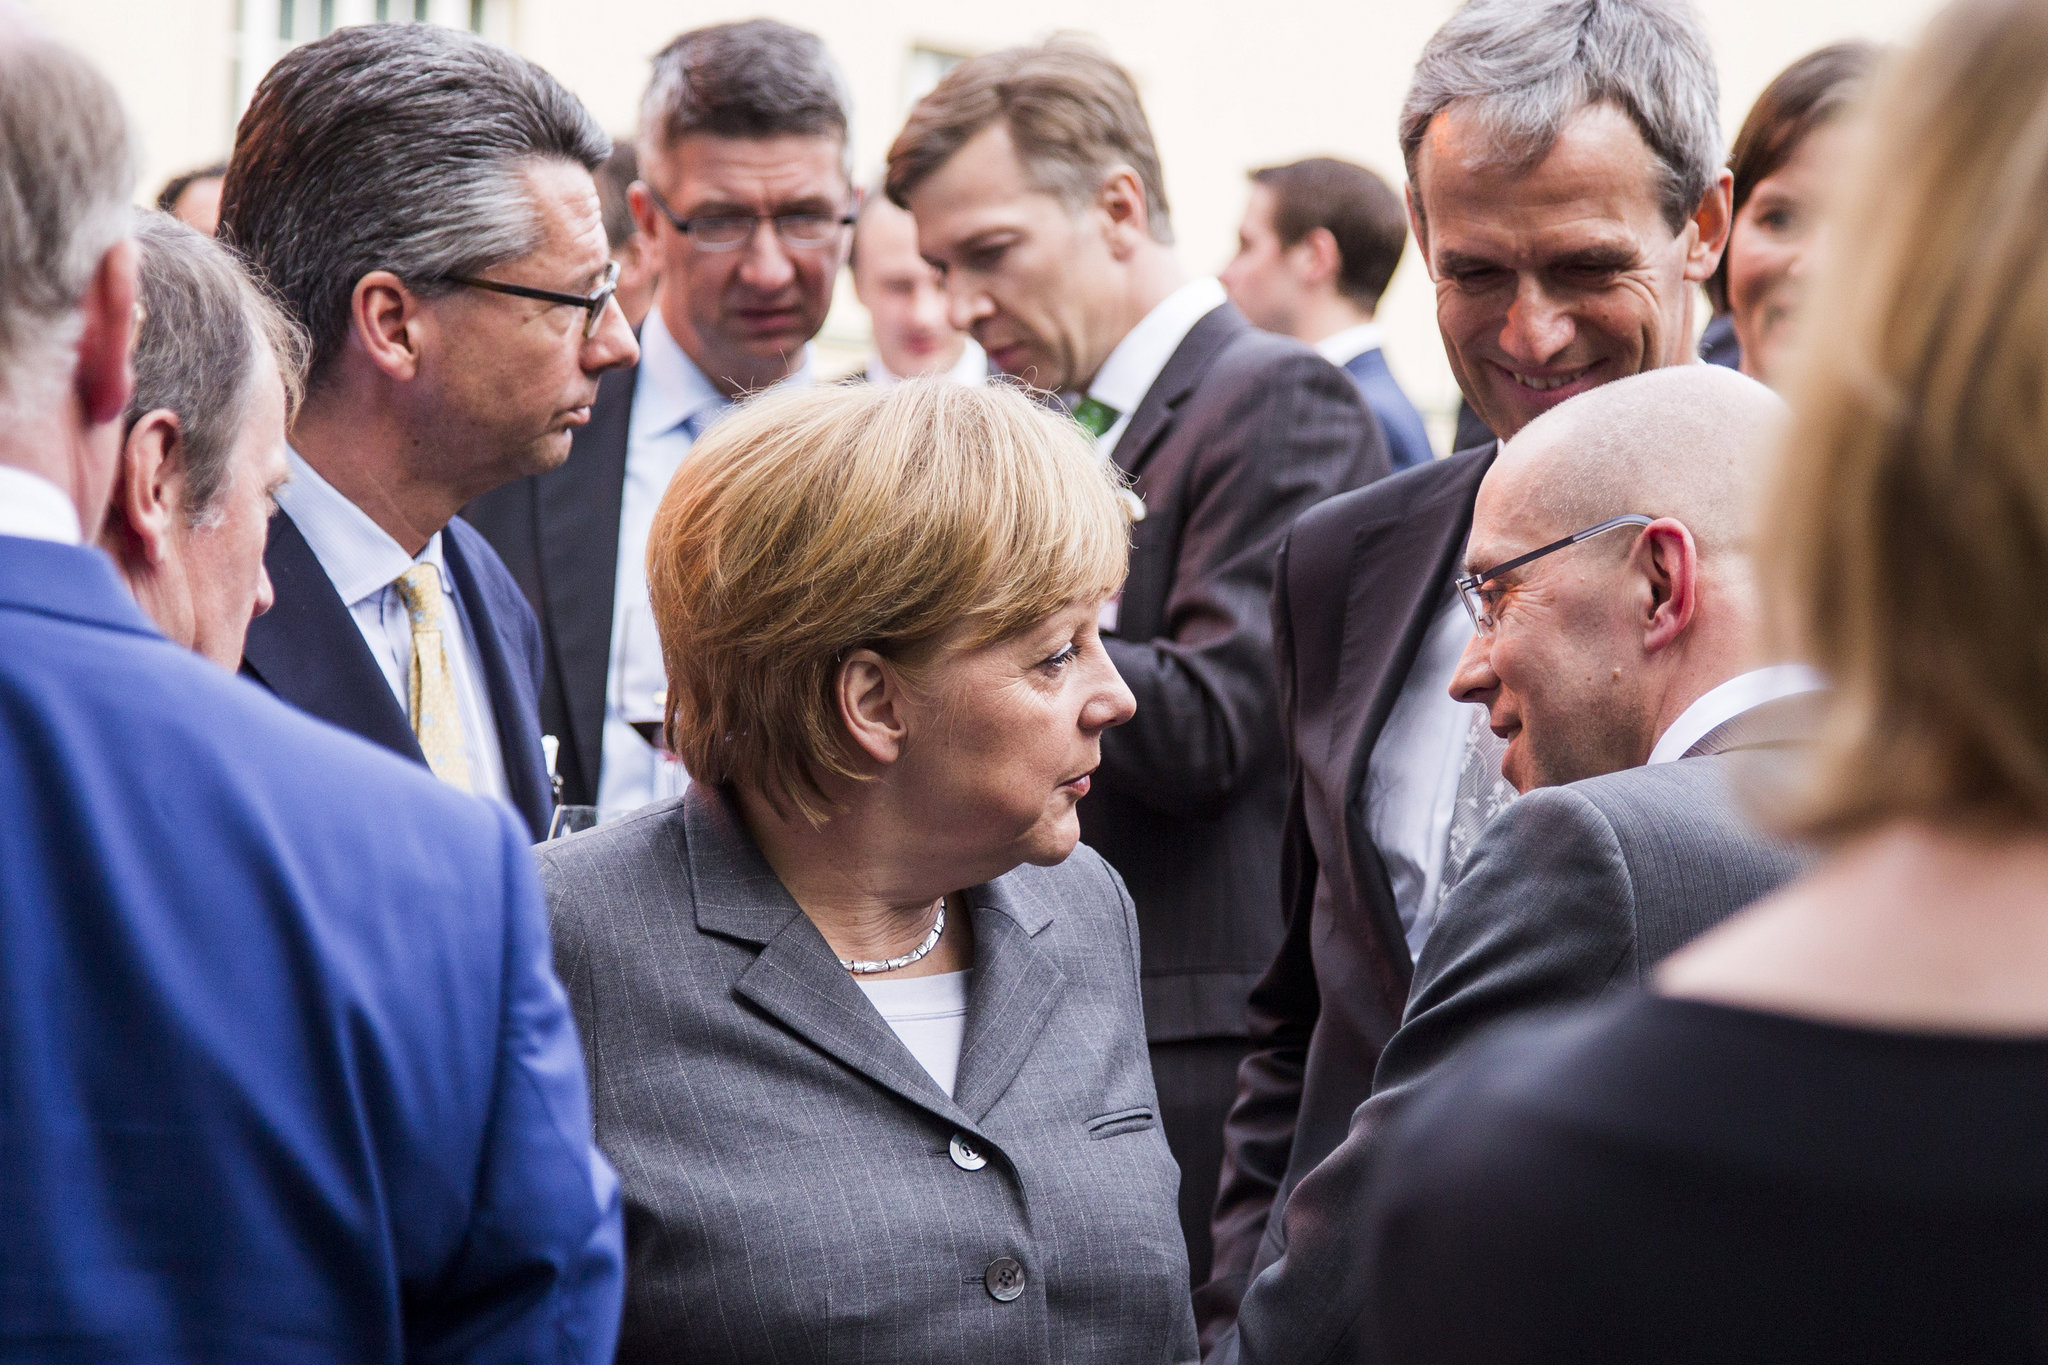 """When is the right time, if not now?"" German Chancellor Angela Merkel said on Tuesday, referring to US-EU trade deal, TTIP. Here, she is pictured at an event with BDI chief Ulrich Grillo (left) in 2013. [Jochen Zick, Action Press/Flickr]"